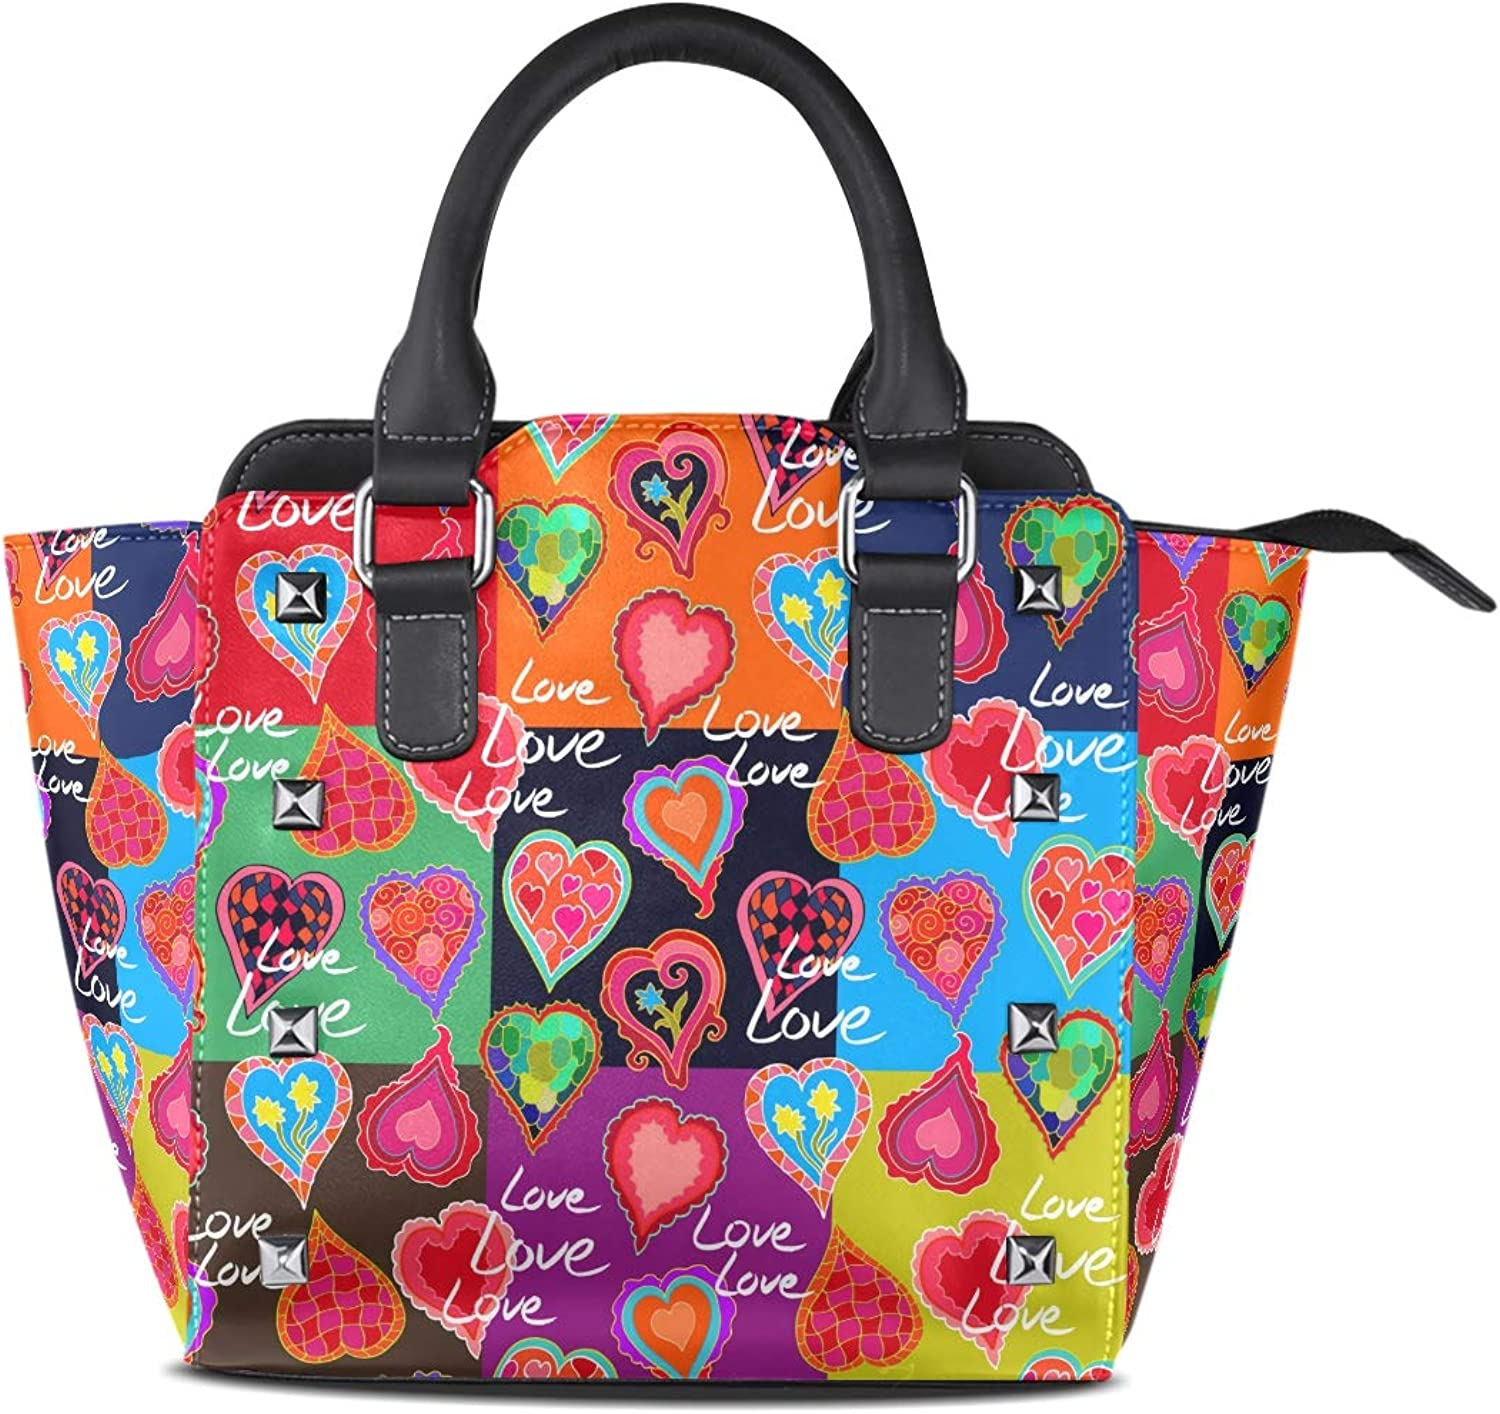 My Little Nest Women's Top Handle Satchel Handbag colorful Doodle Hearts Patchwork Ladies PU Leather Shoulder Bag Crossbody Bag